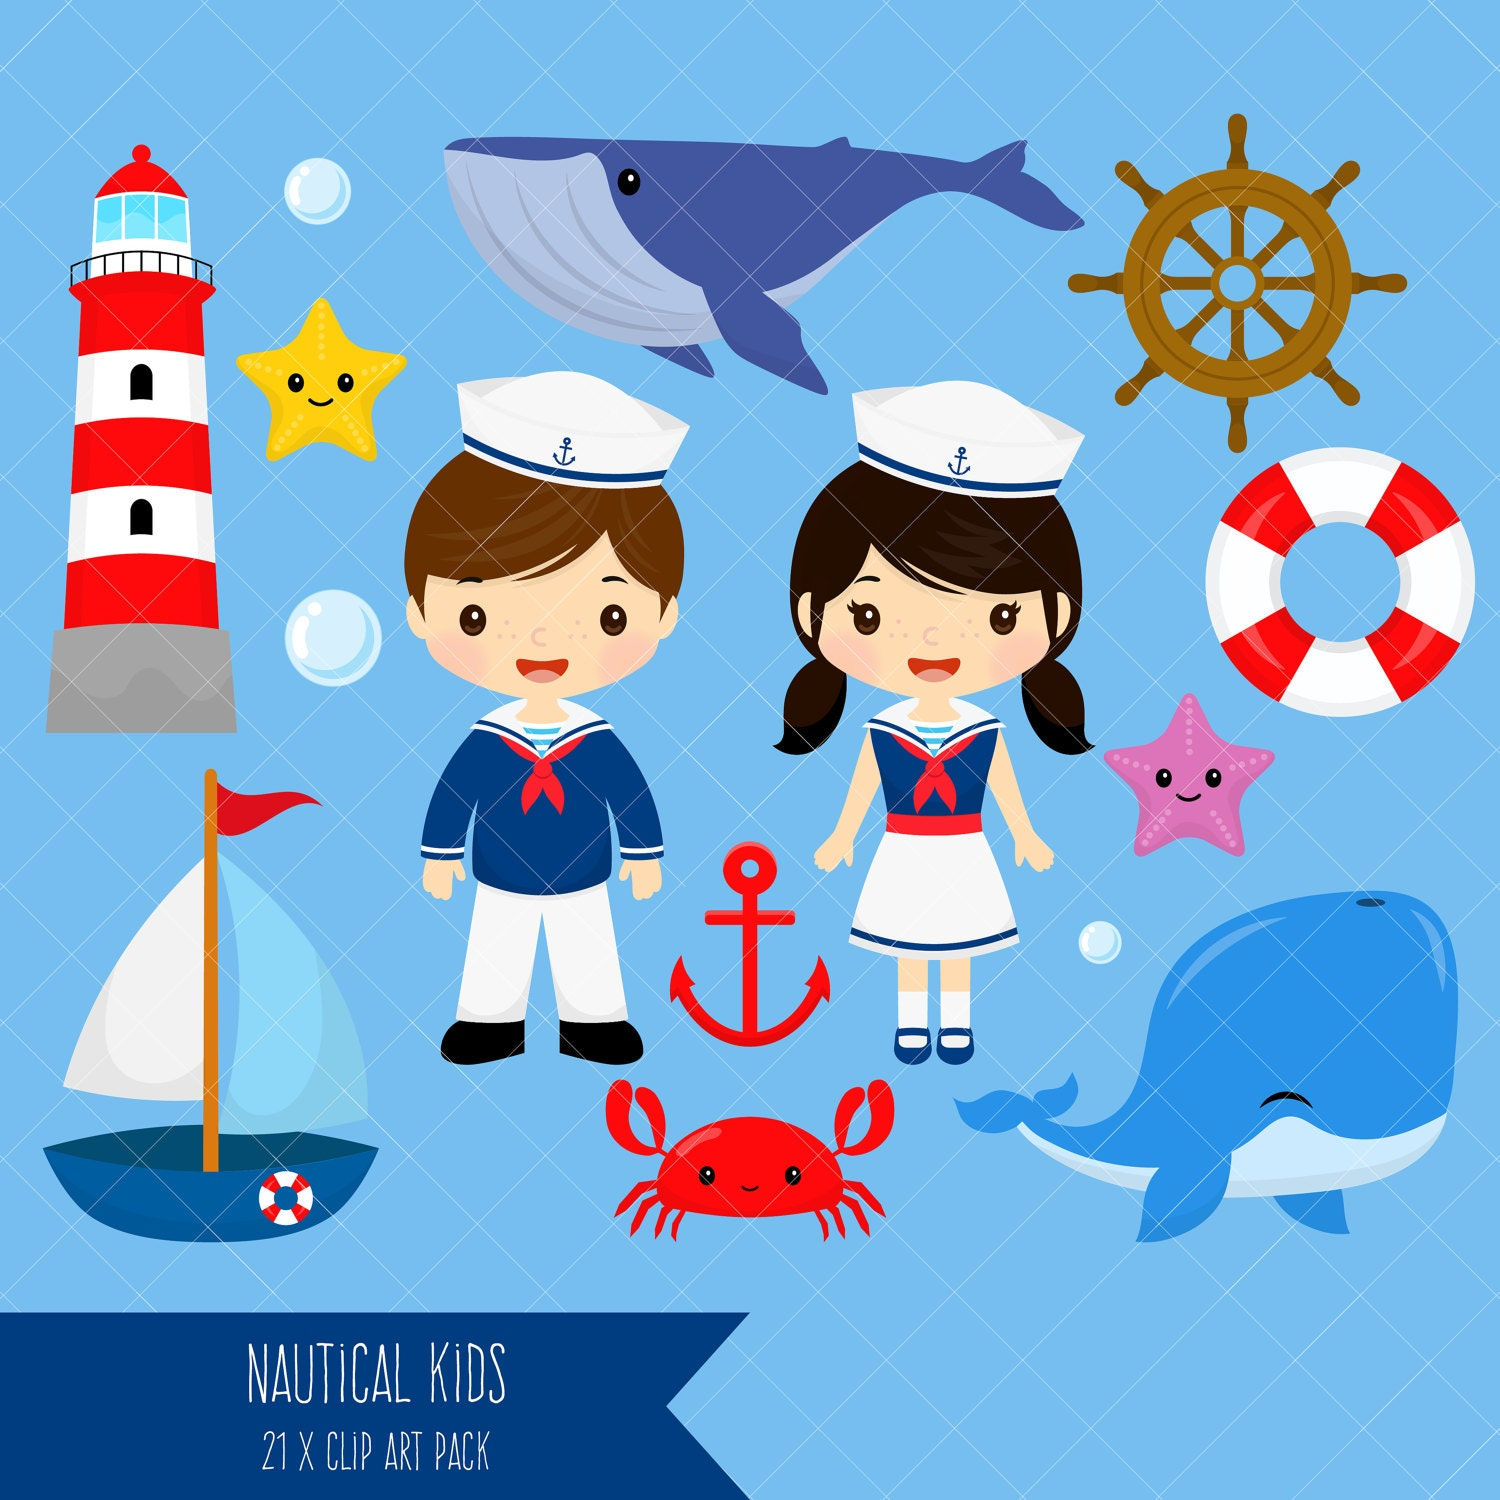 nautical kids clipart sailor boy clip art sailor girl clip rh etsy com sailor clipart free baby boy sailor clipart